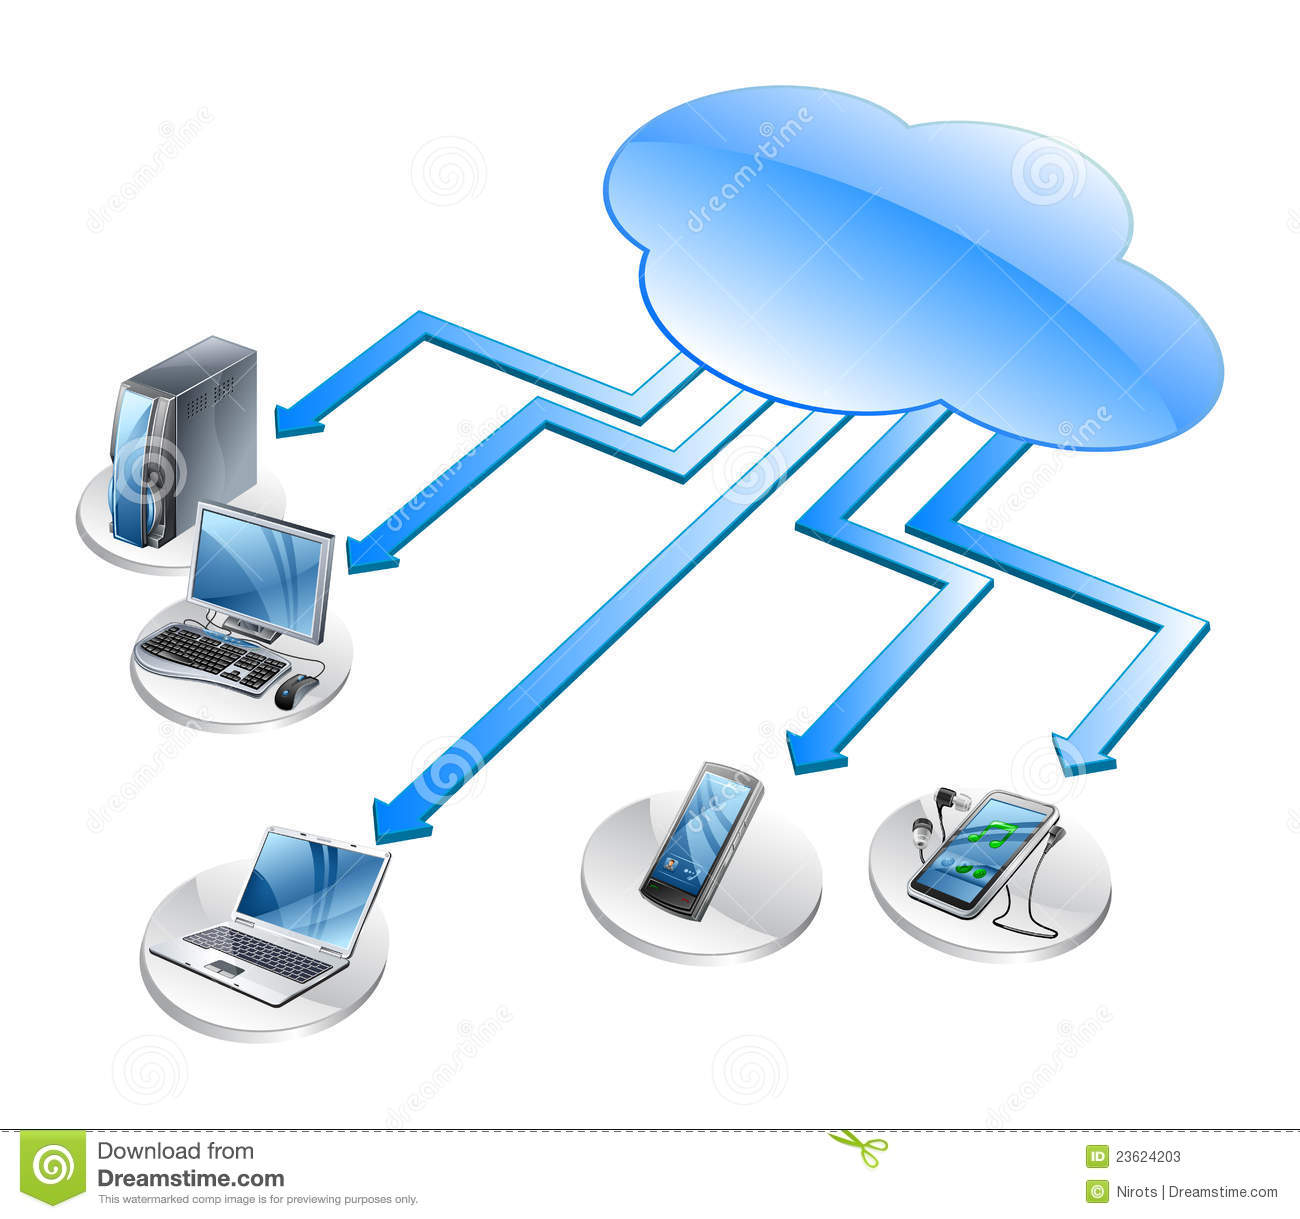 Networking Cloud Computing: Stock Photos: Cloud Computing Networking Technology. Image